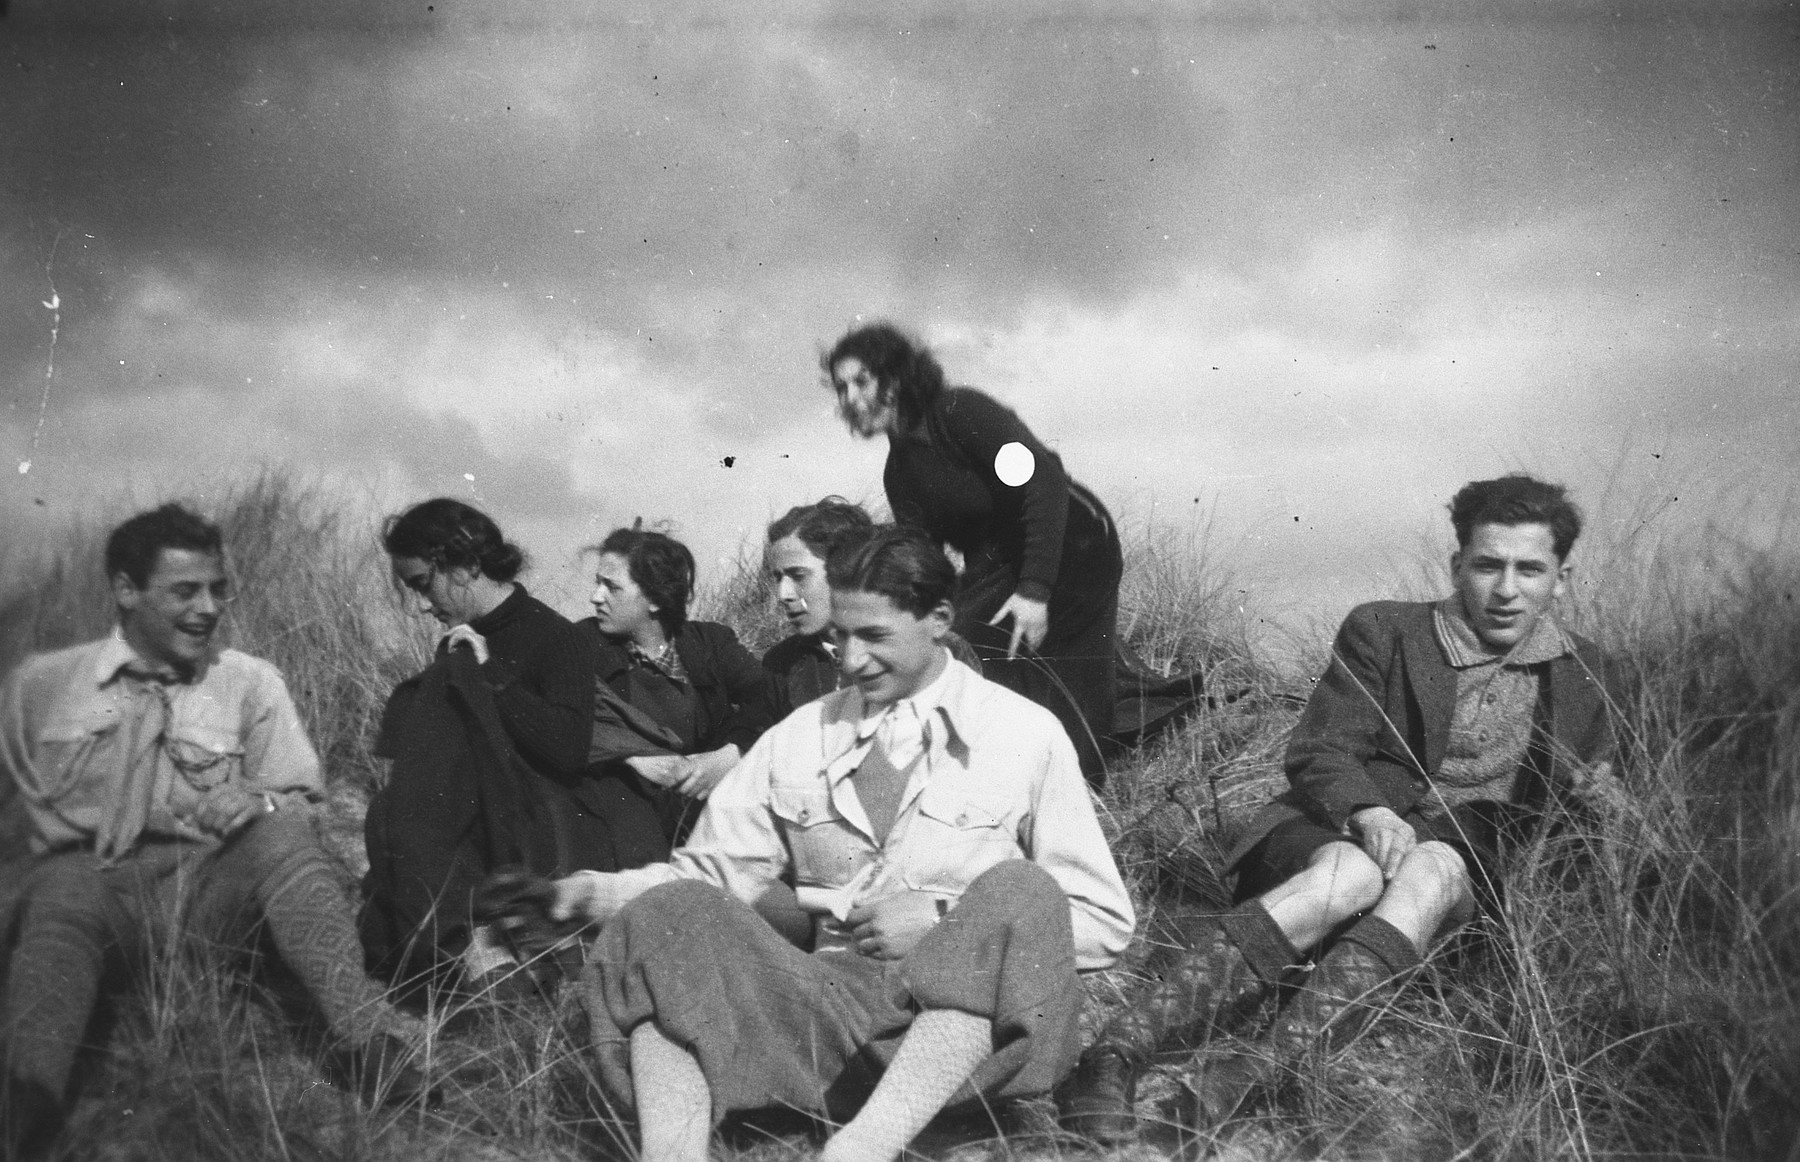 Members of Maccabi Hatzair rest in a field in the Netherlands.   Among those pictured is Erich Zielenziger.    [This photo is undated and may be wartime as Erich belonged to the group both immediately before and after the invasion.]